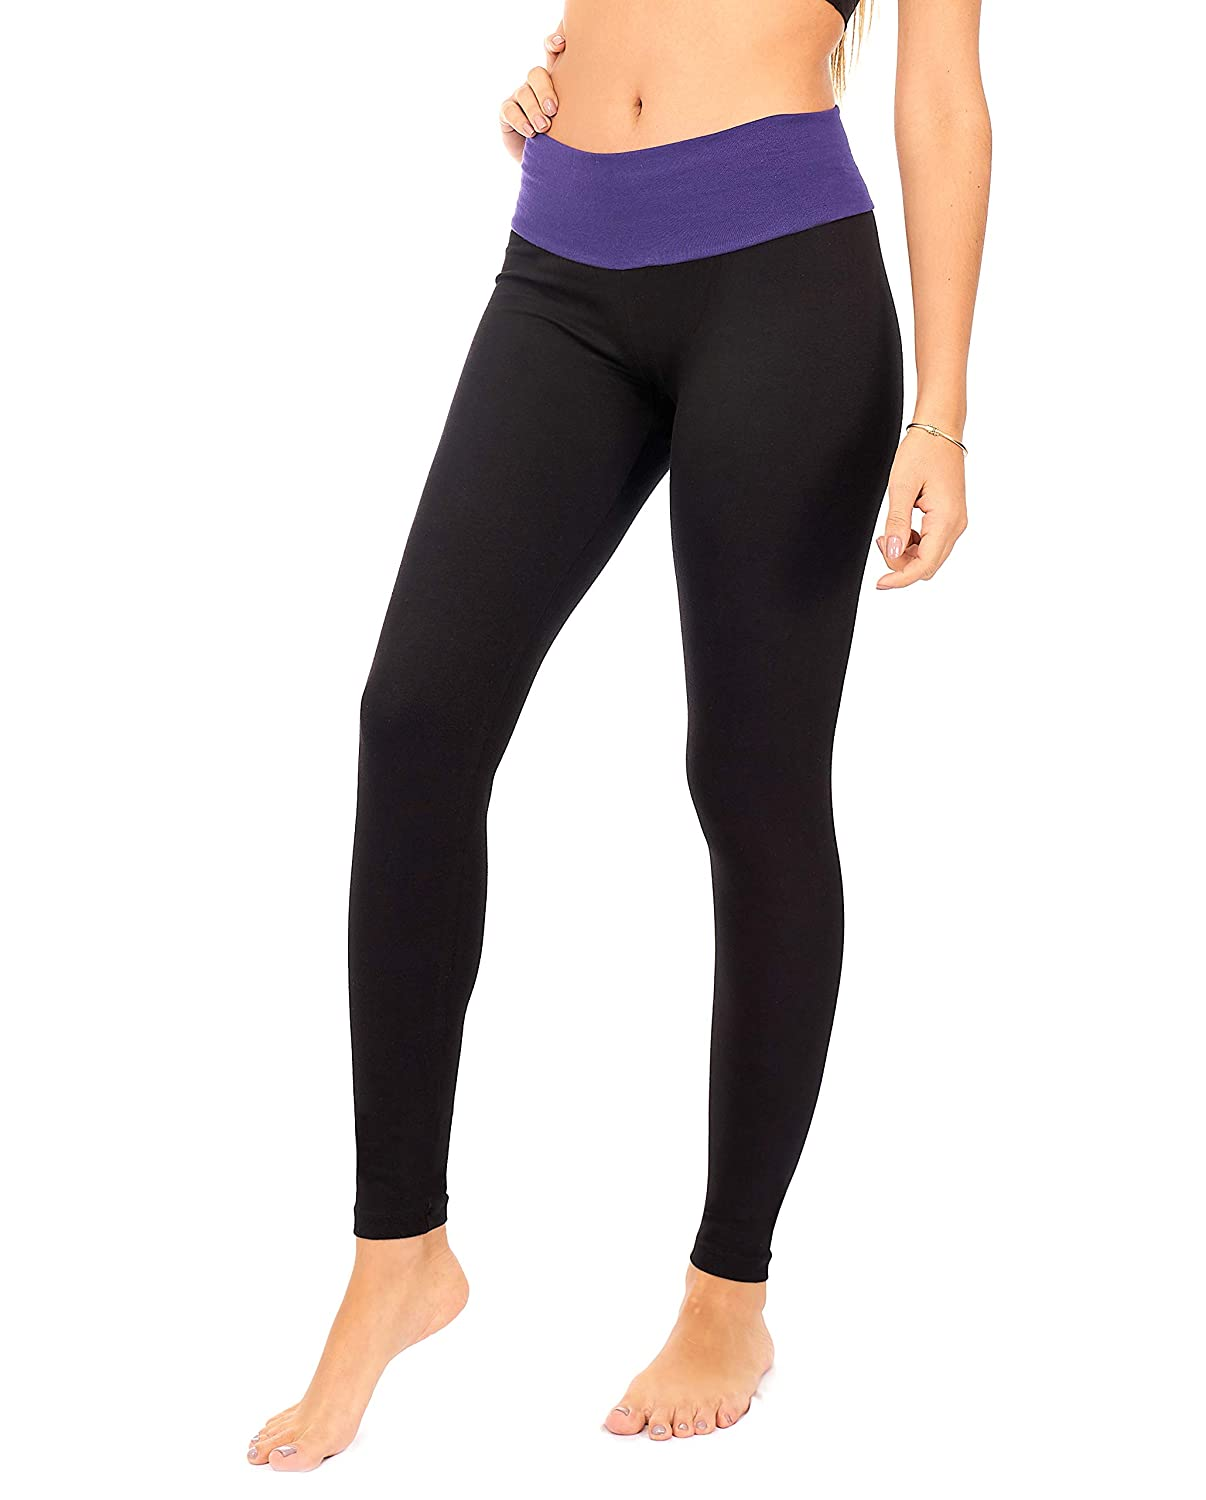 DEAR SPARKLE Yoga Pants with Pocket | Lounge Leggings High Waist Workout Sweatpants (C12)